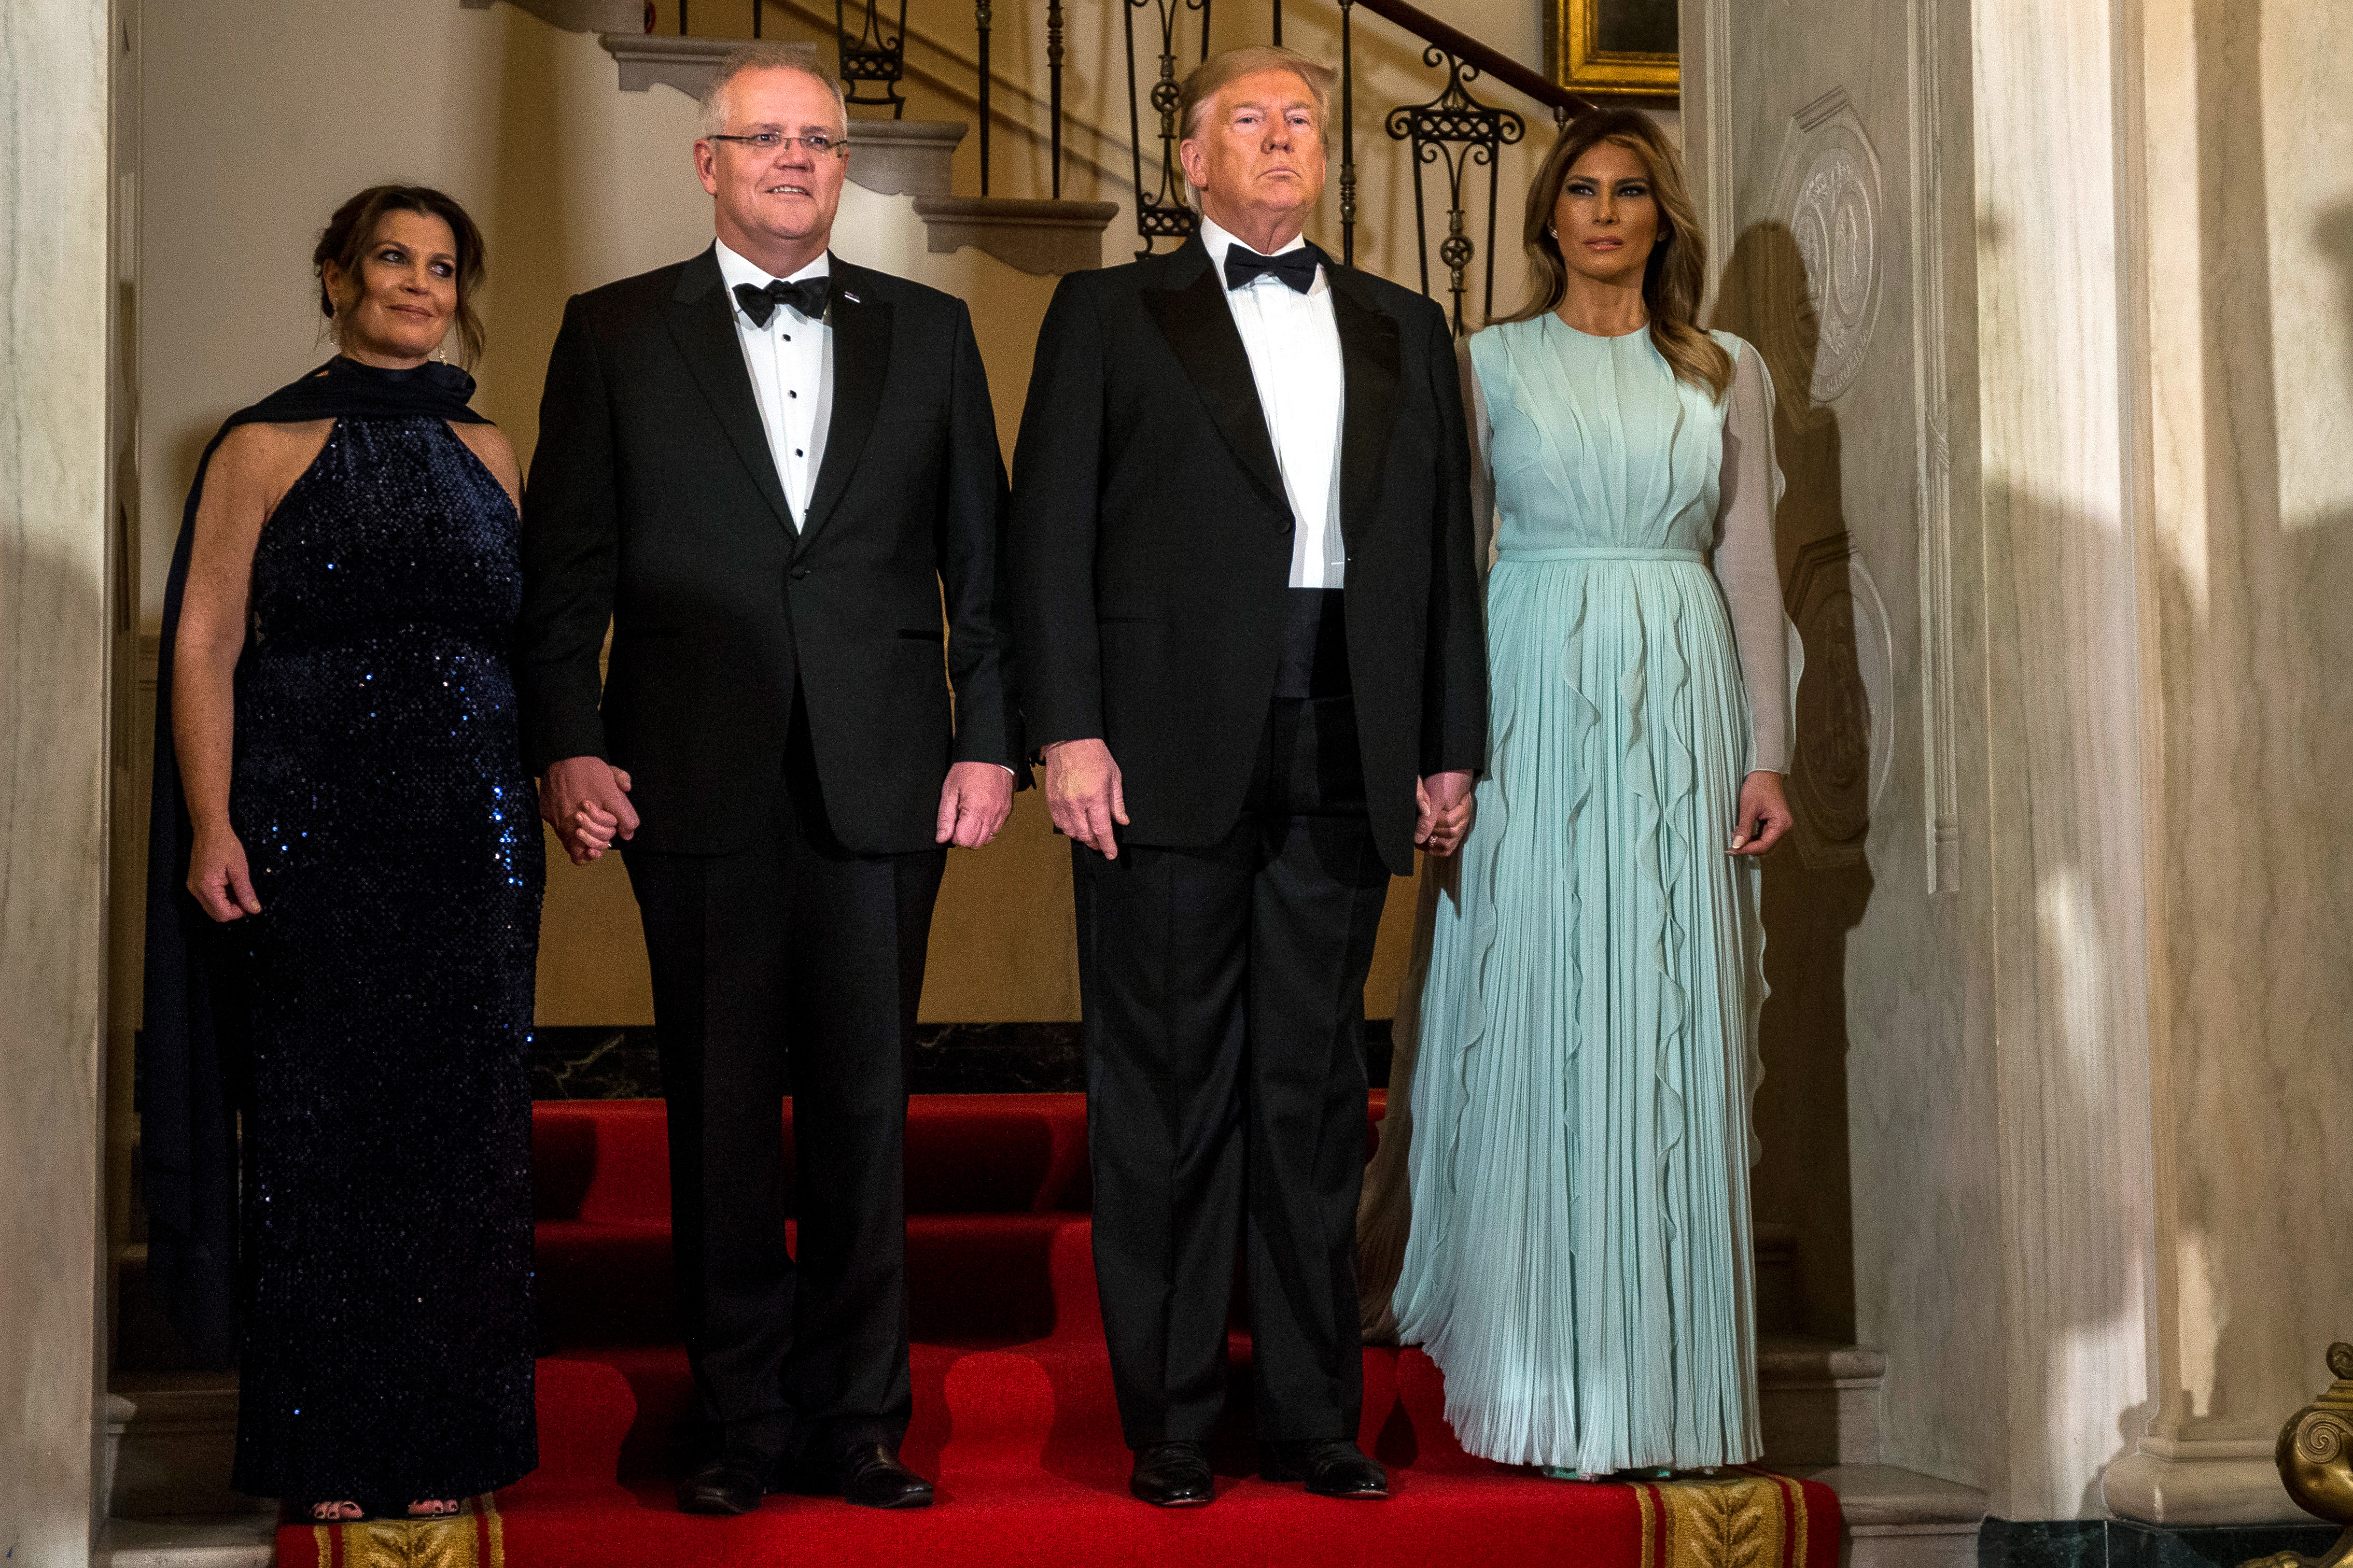 US President Donald Trump and First Lady Melania Trump, Australian Prime Minister Scott Morrison, and Australian First Lady Jennifer Morrison are pictured ahead of a state dinner at the White House September 20, 2019 in Washington, DC.